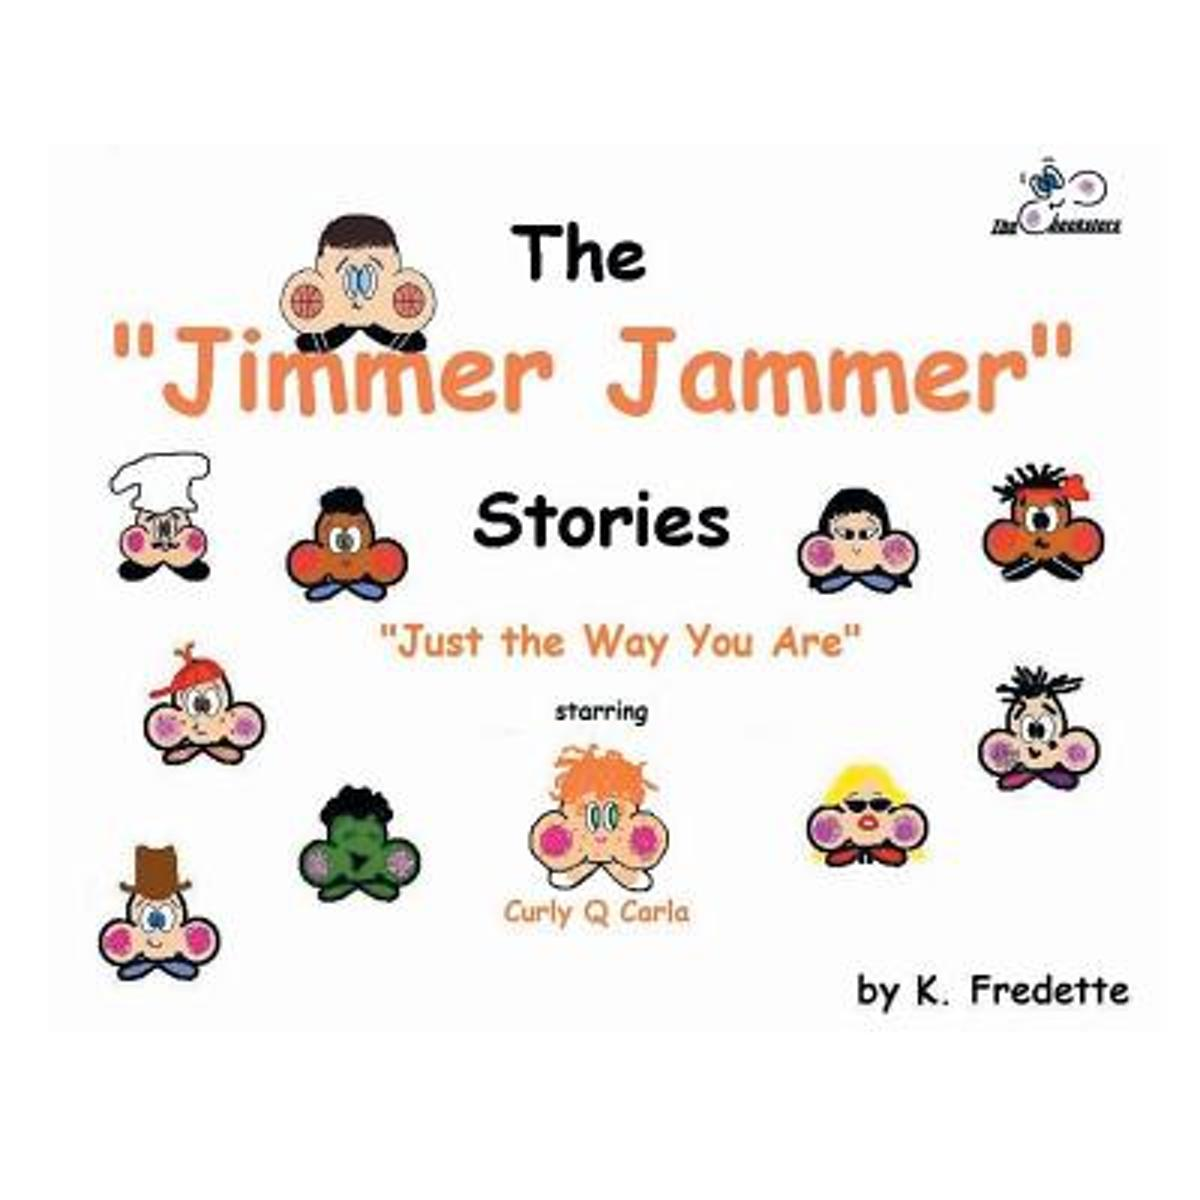 The Jimmer Jammer Stories